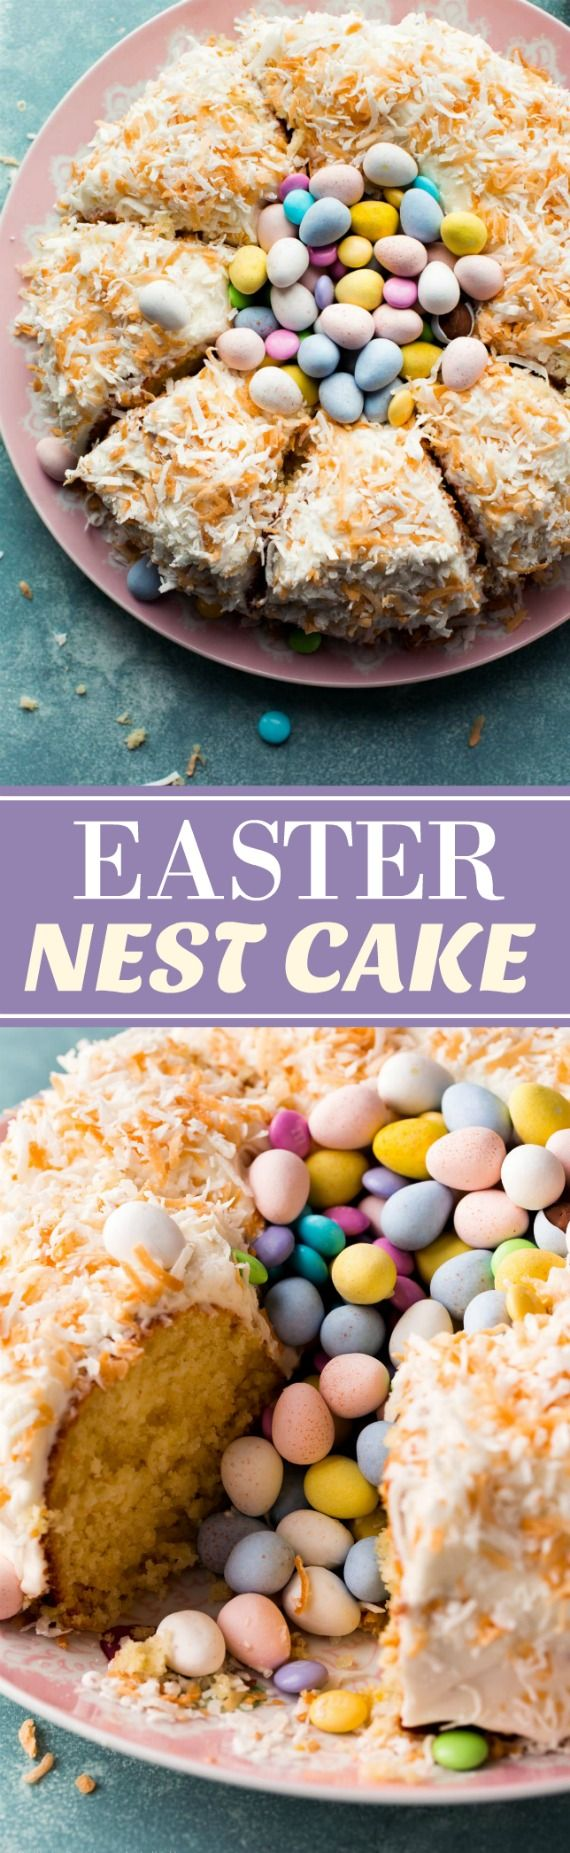 A stunning and easy dessert, this coconut Easter nest cake will impress everyone around the Easter dinner table! Recipe on sallysbakingaddiction.com